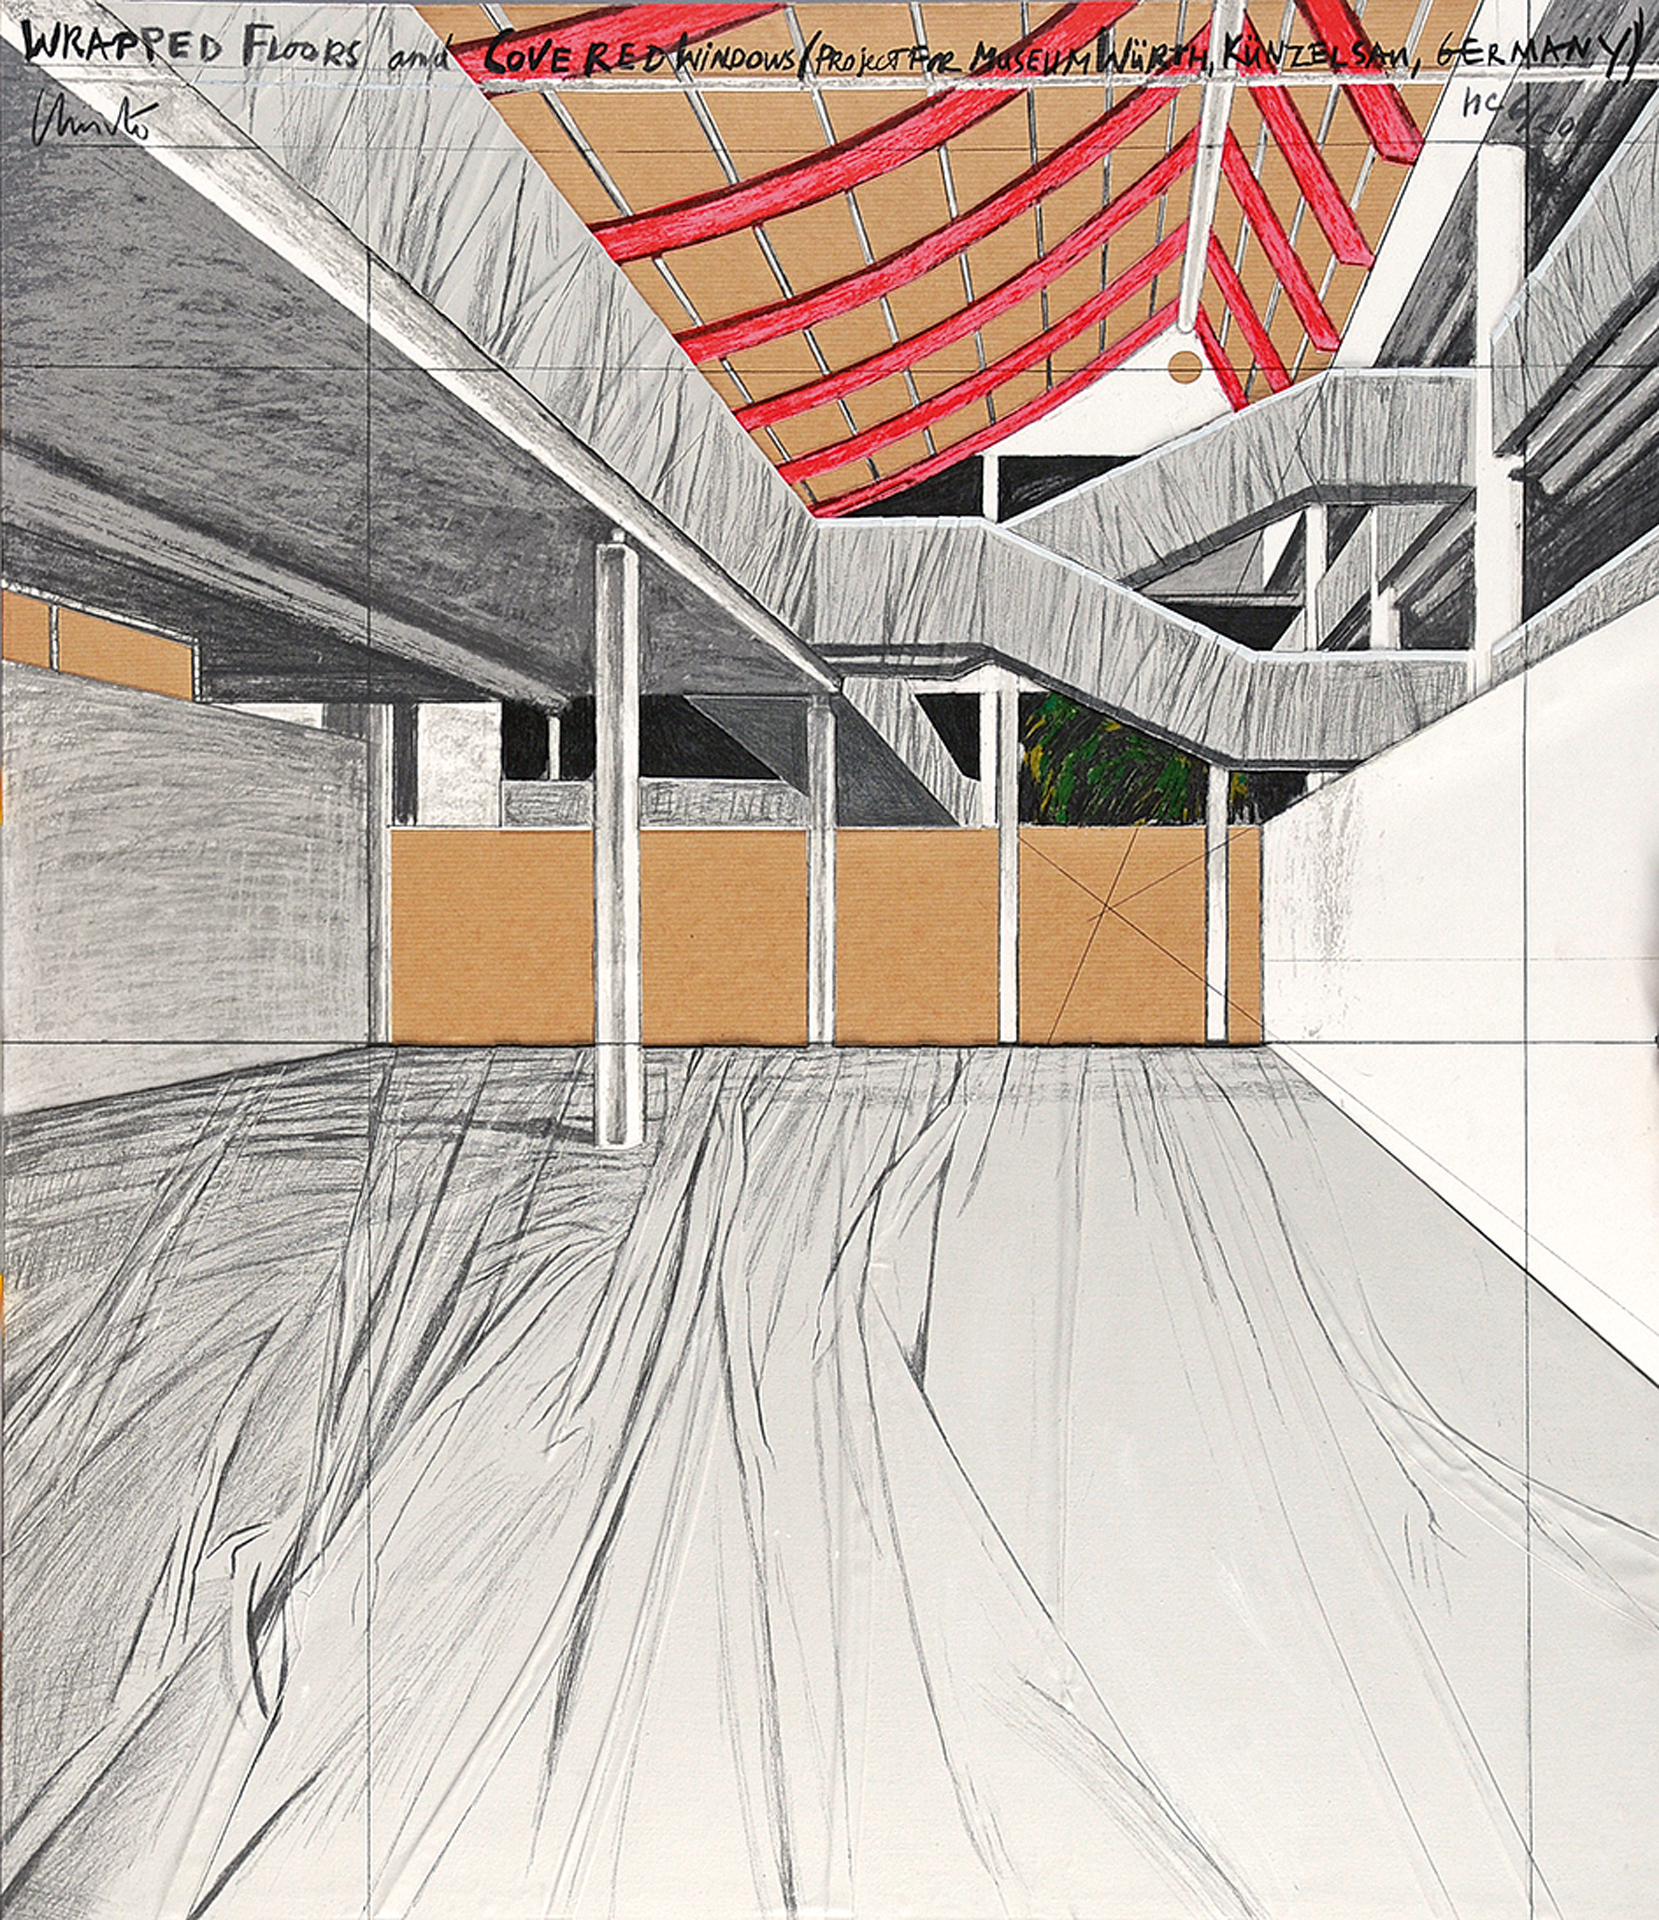 Christo, Wrapped Floors and Covered Windows, Project for Museum Würth, Künzelsau, Germany